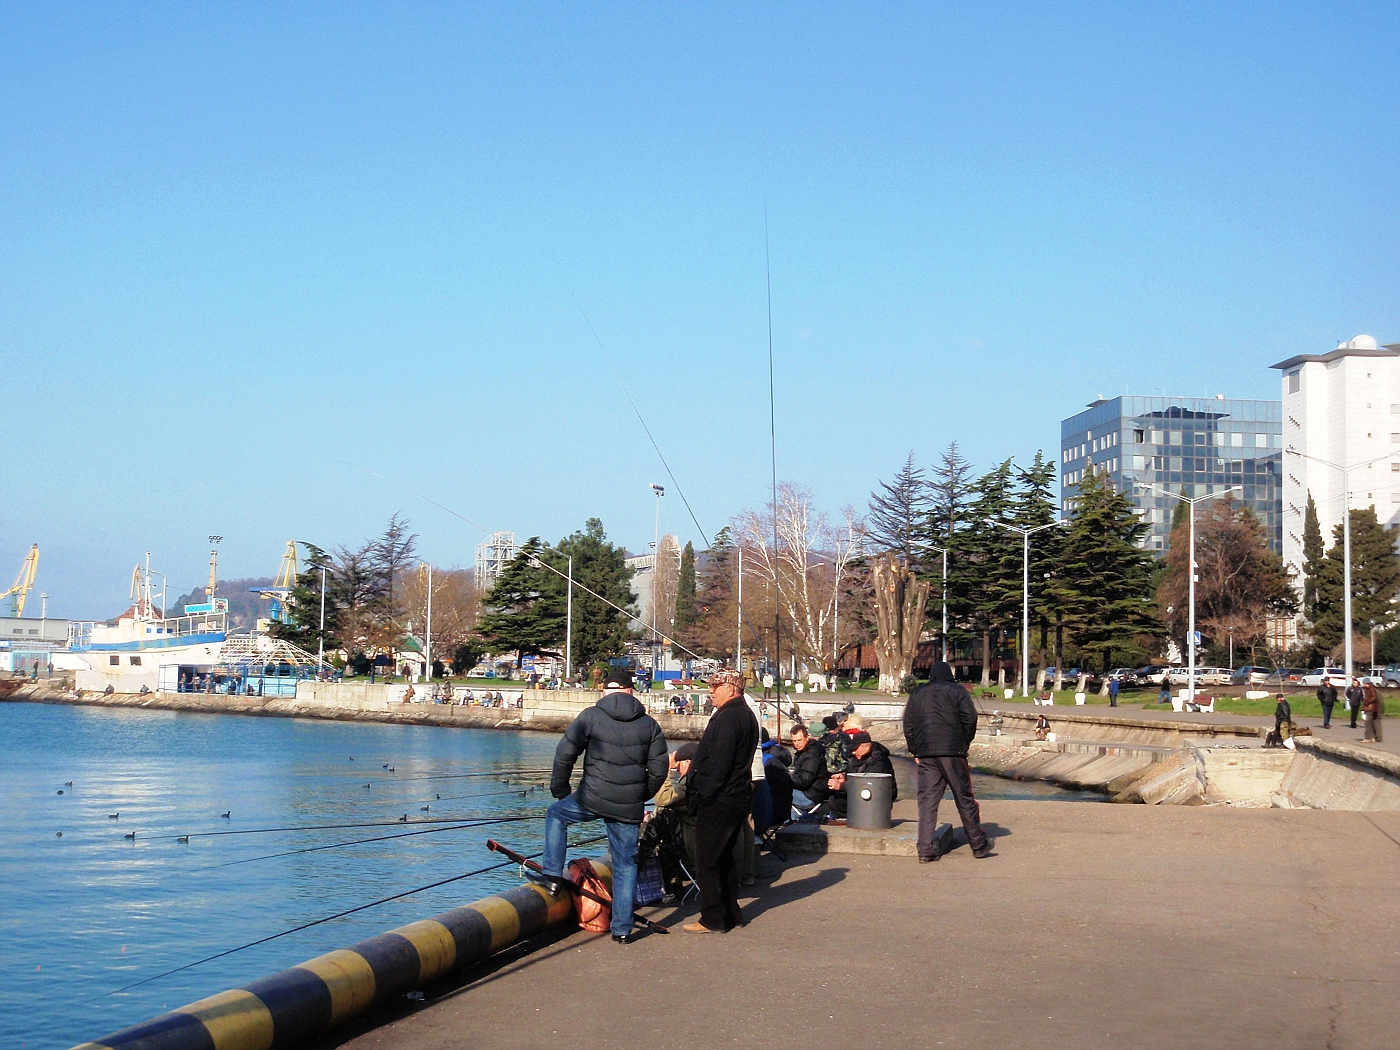 Anglers in the harbour